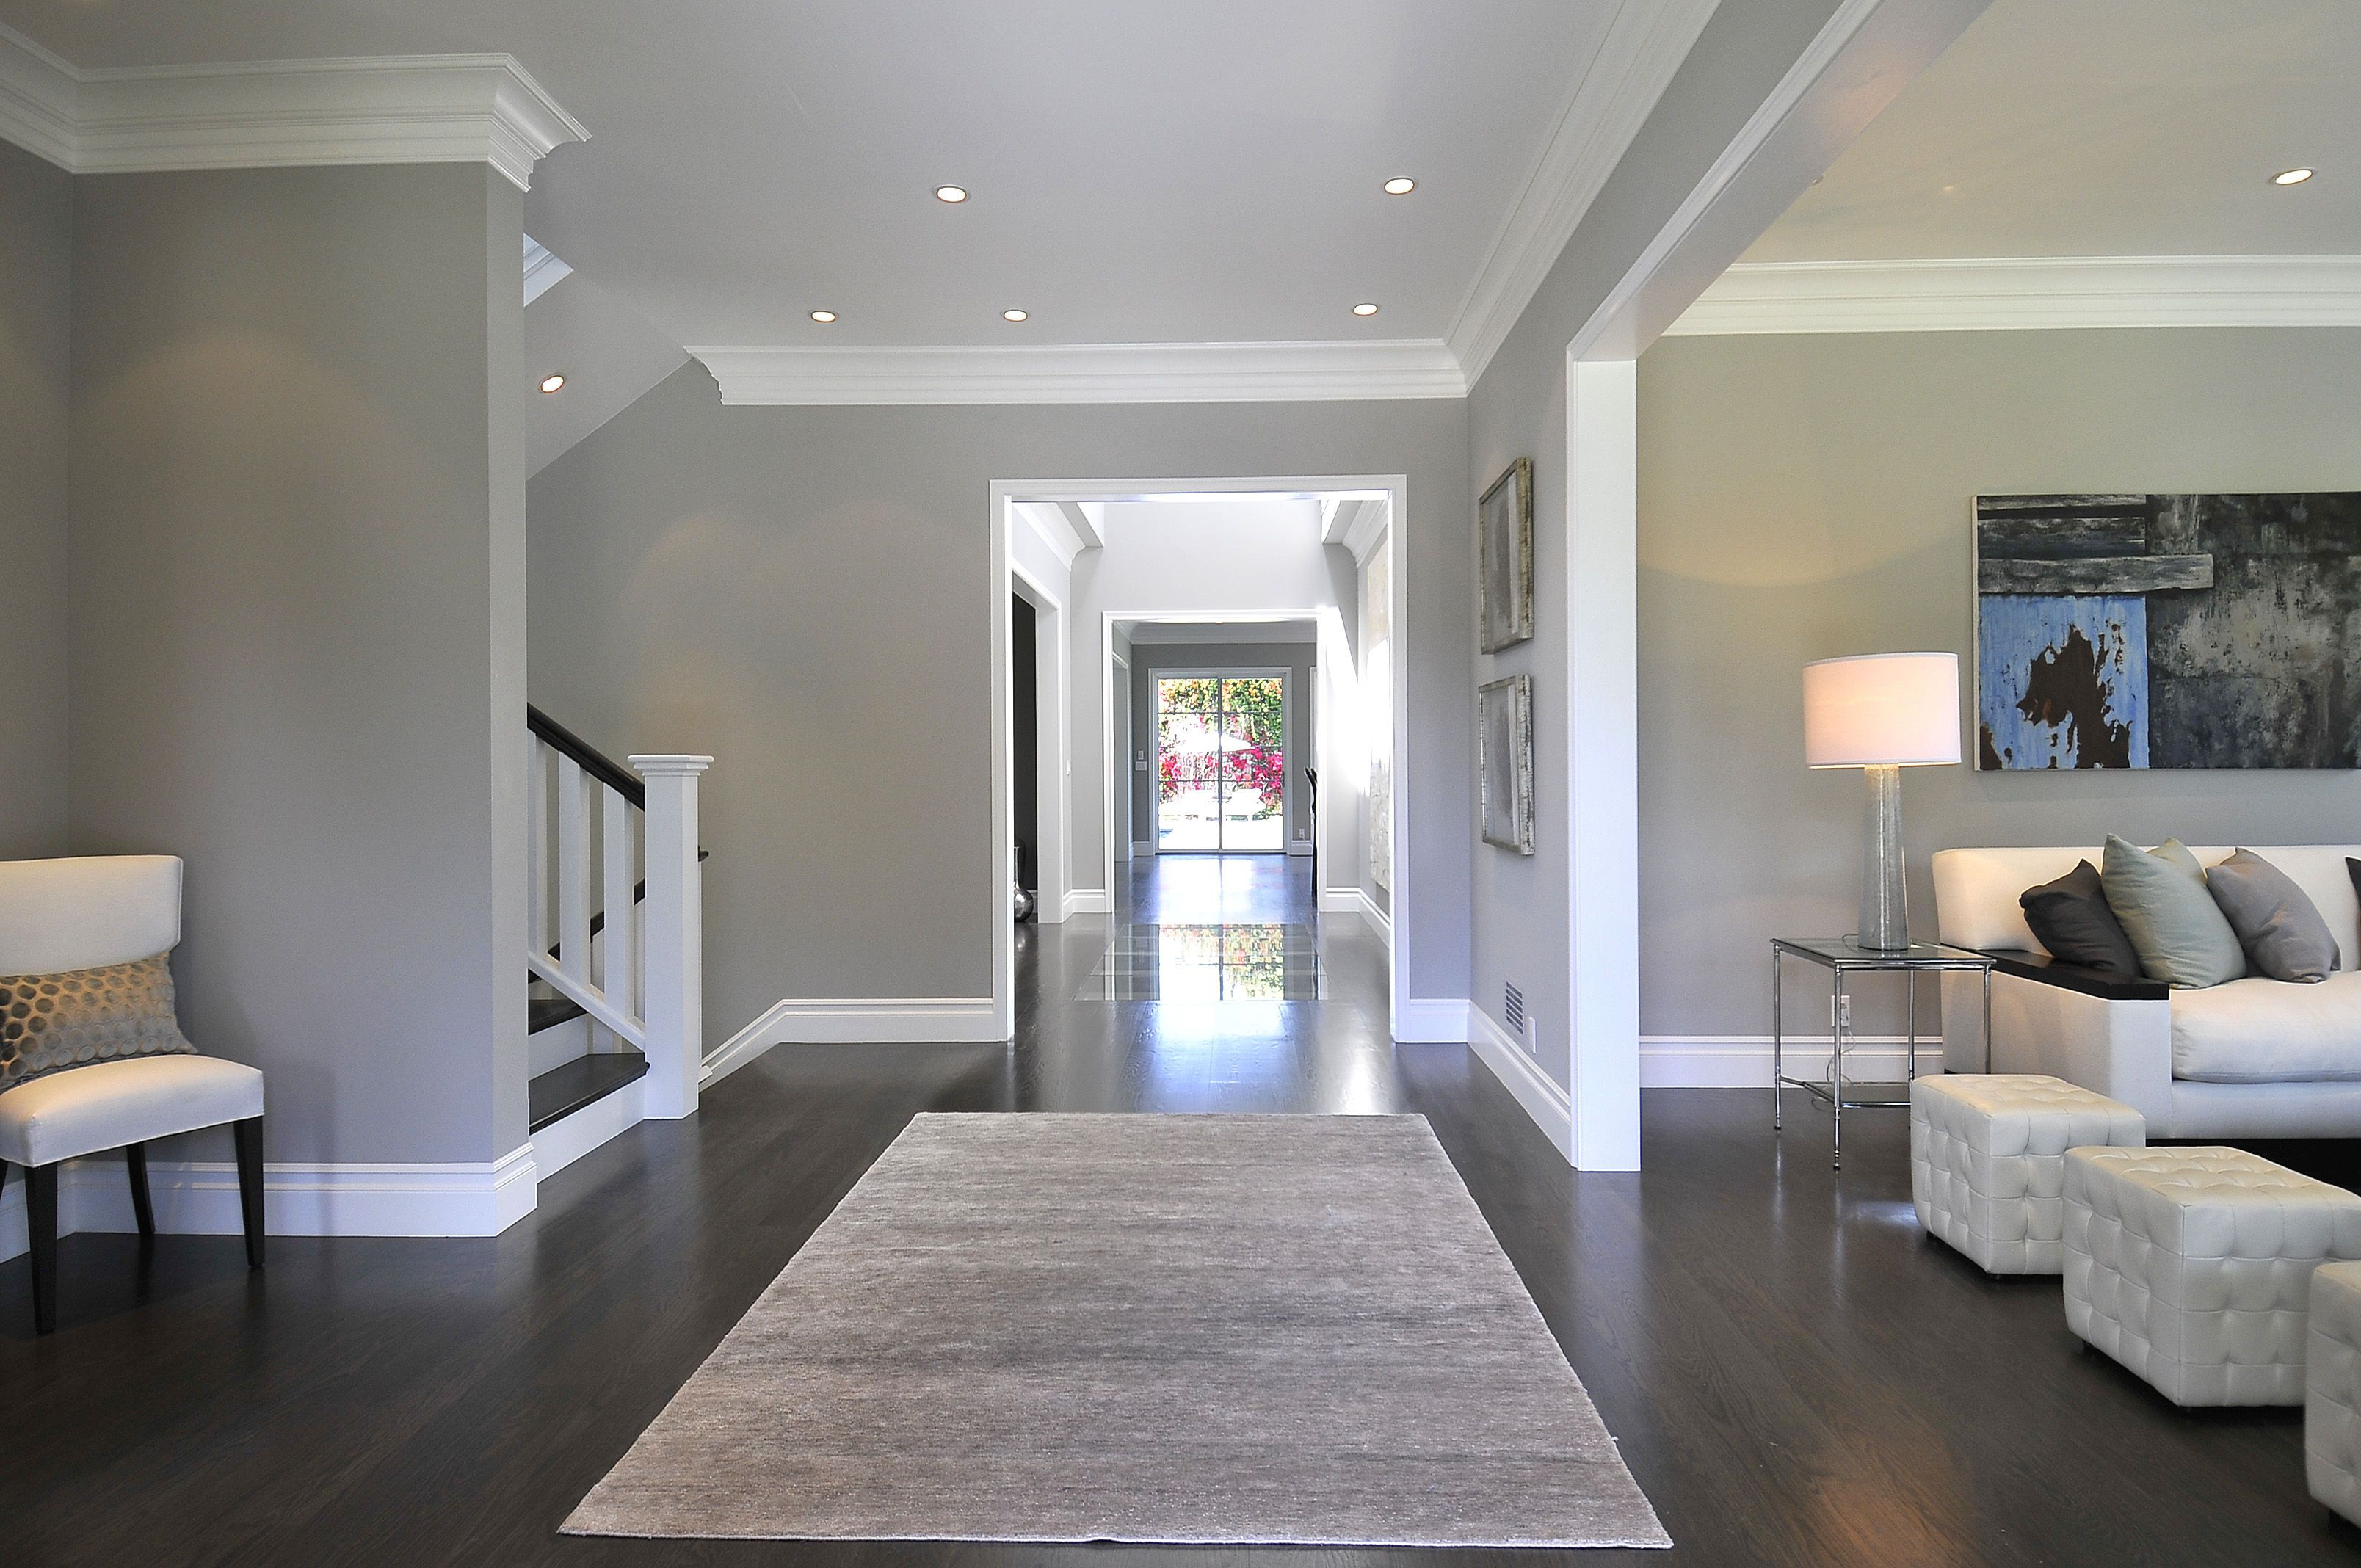 gray walls with dark wood floors - Google Search | Home ...